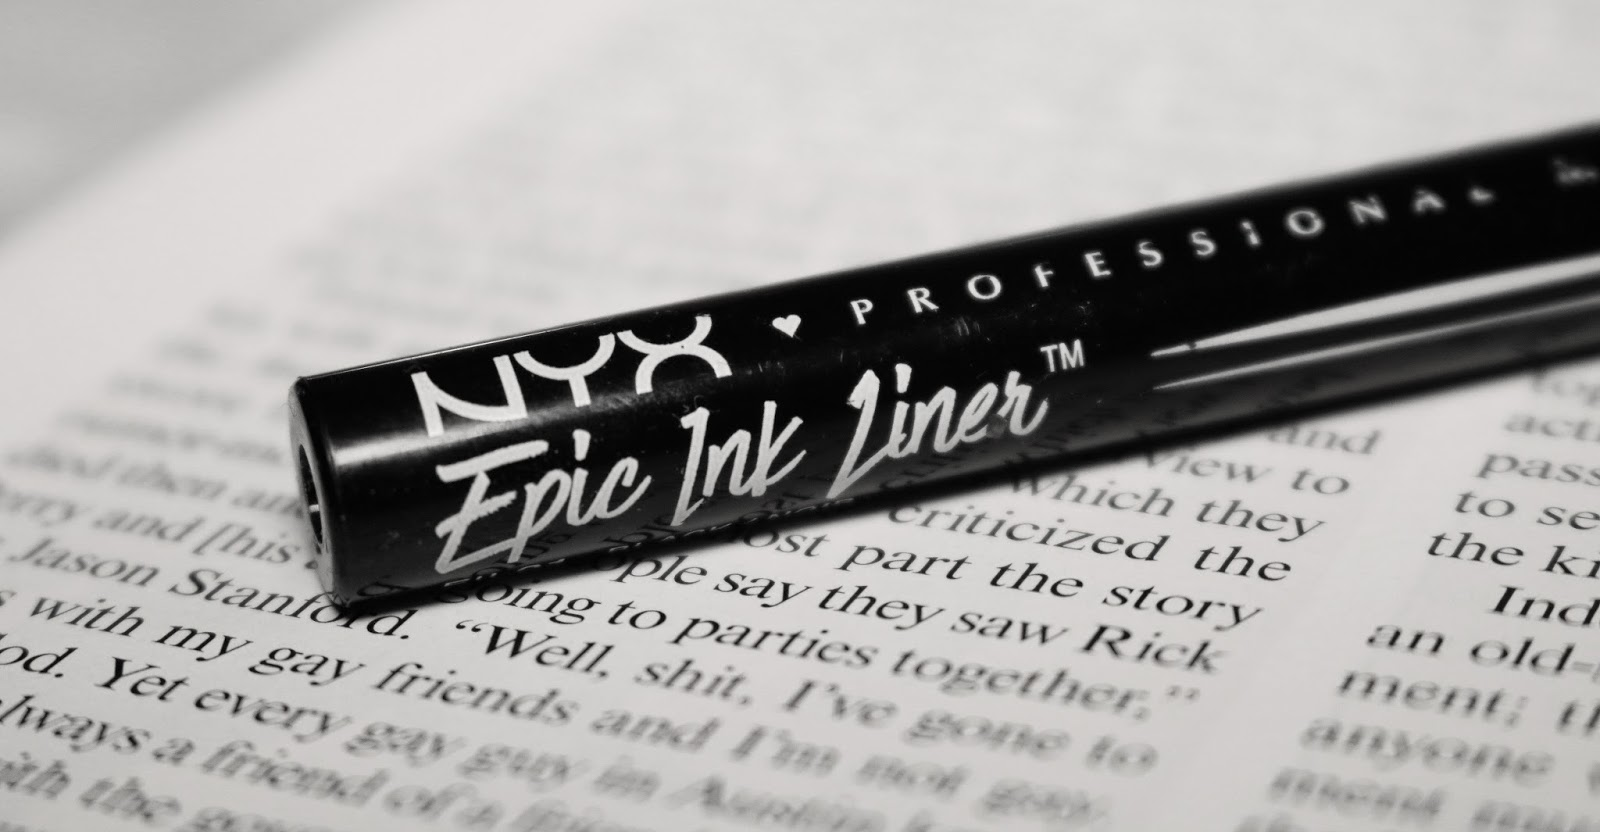 Epic Ink Liner by NYX Professional Makeup #15